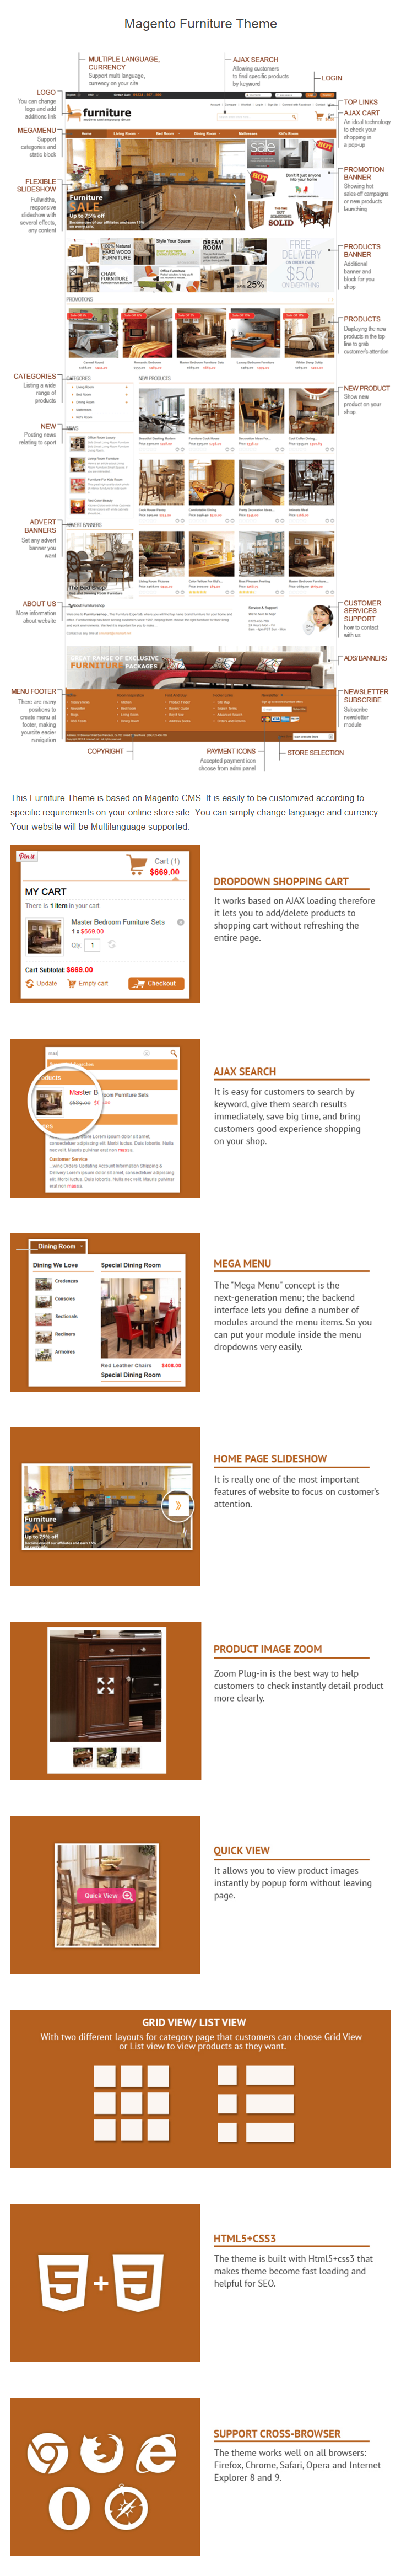 Magento Furniture Theme   Homewares Theme